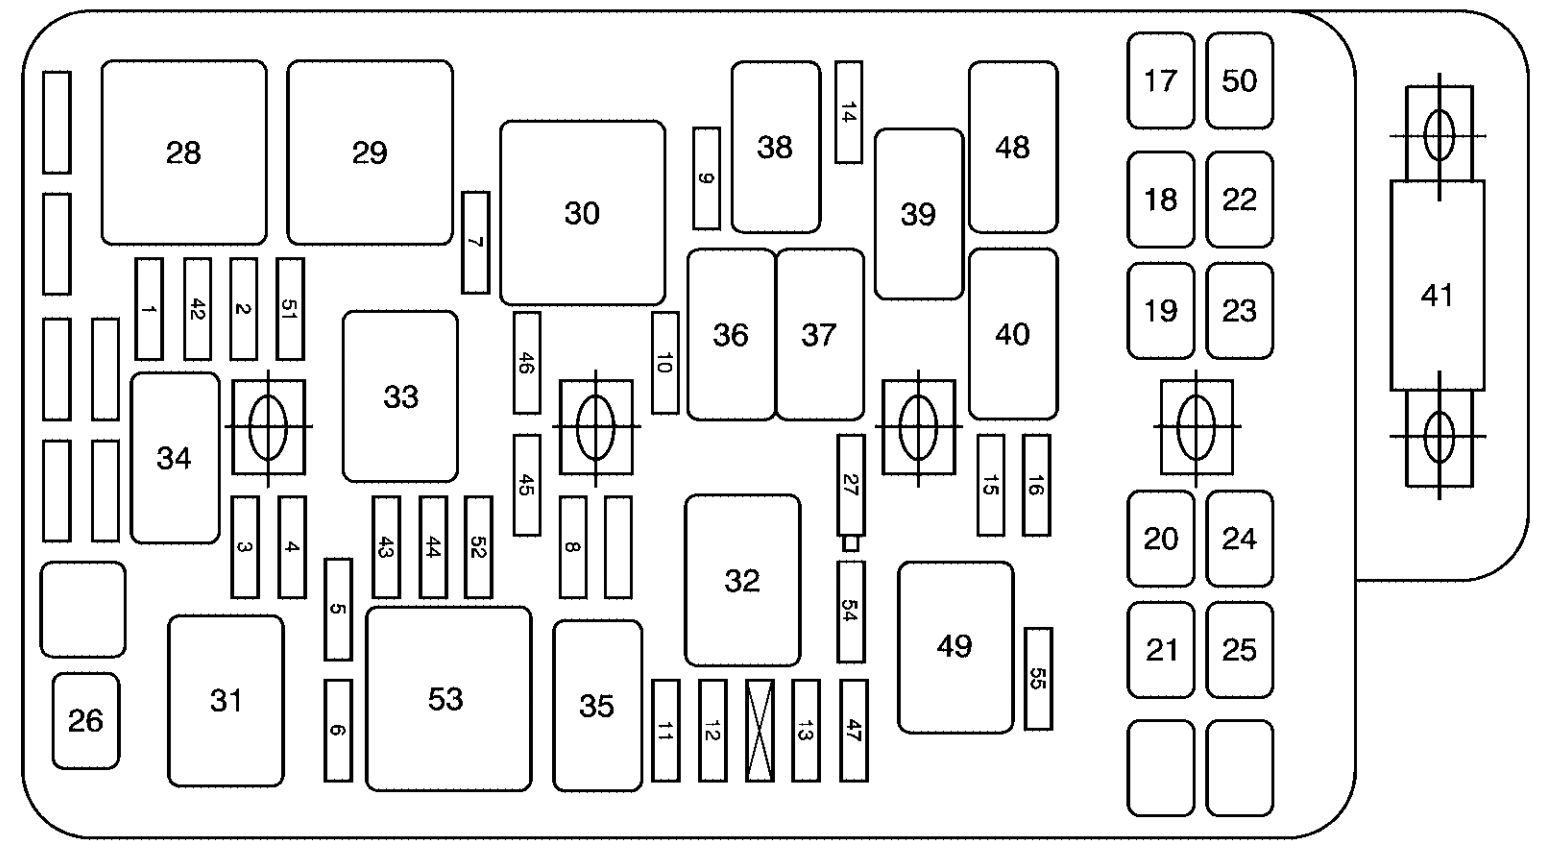 pontiac g6 fuse engine compartment g6 fuse box fuse diagram for 2006 pontiac grand am \u2022 wiring 2009 pontiac g5 fuse box location at bayanpartner.co